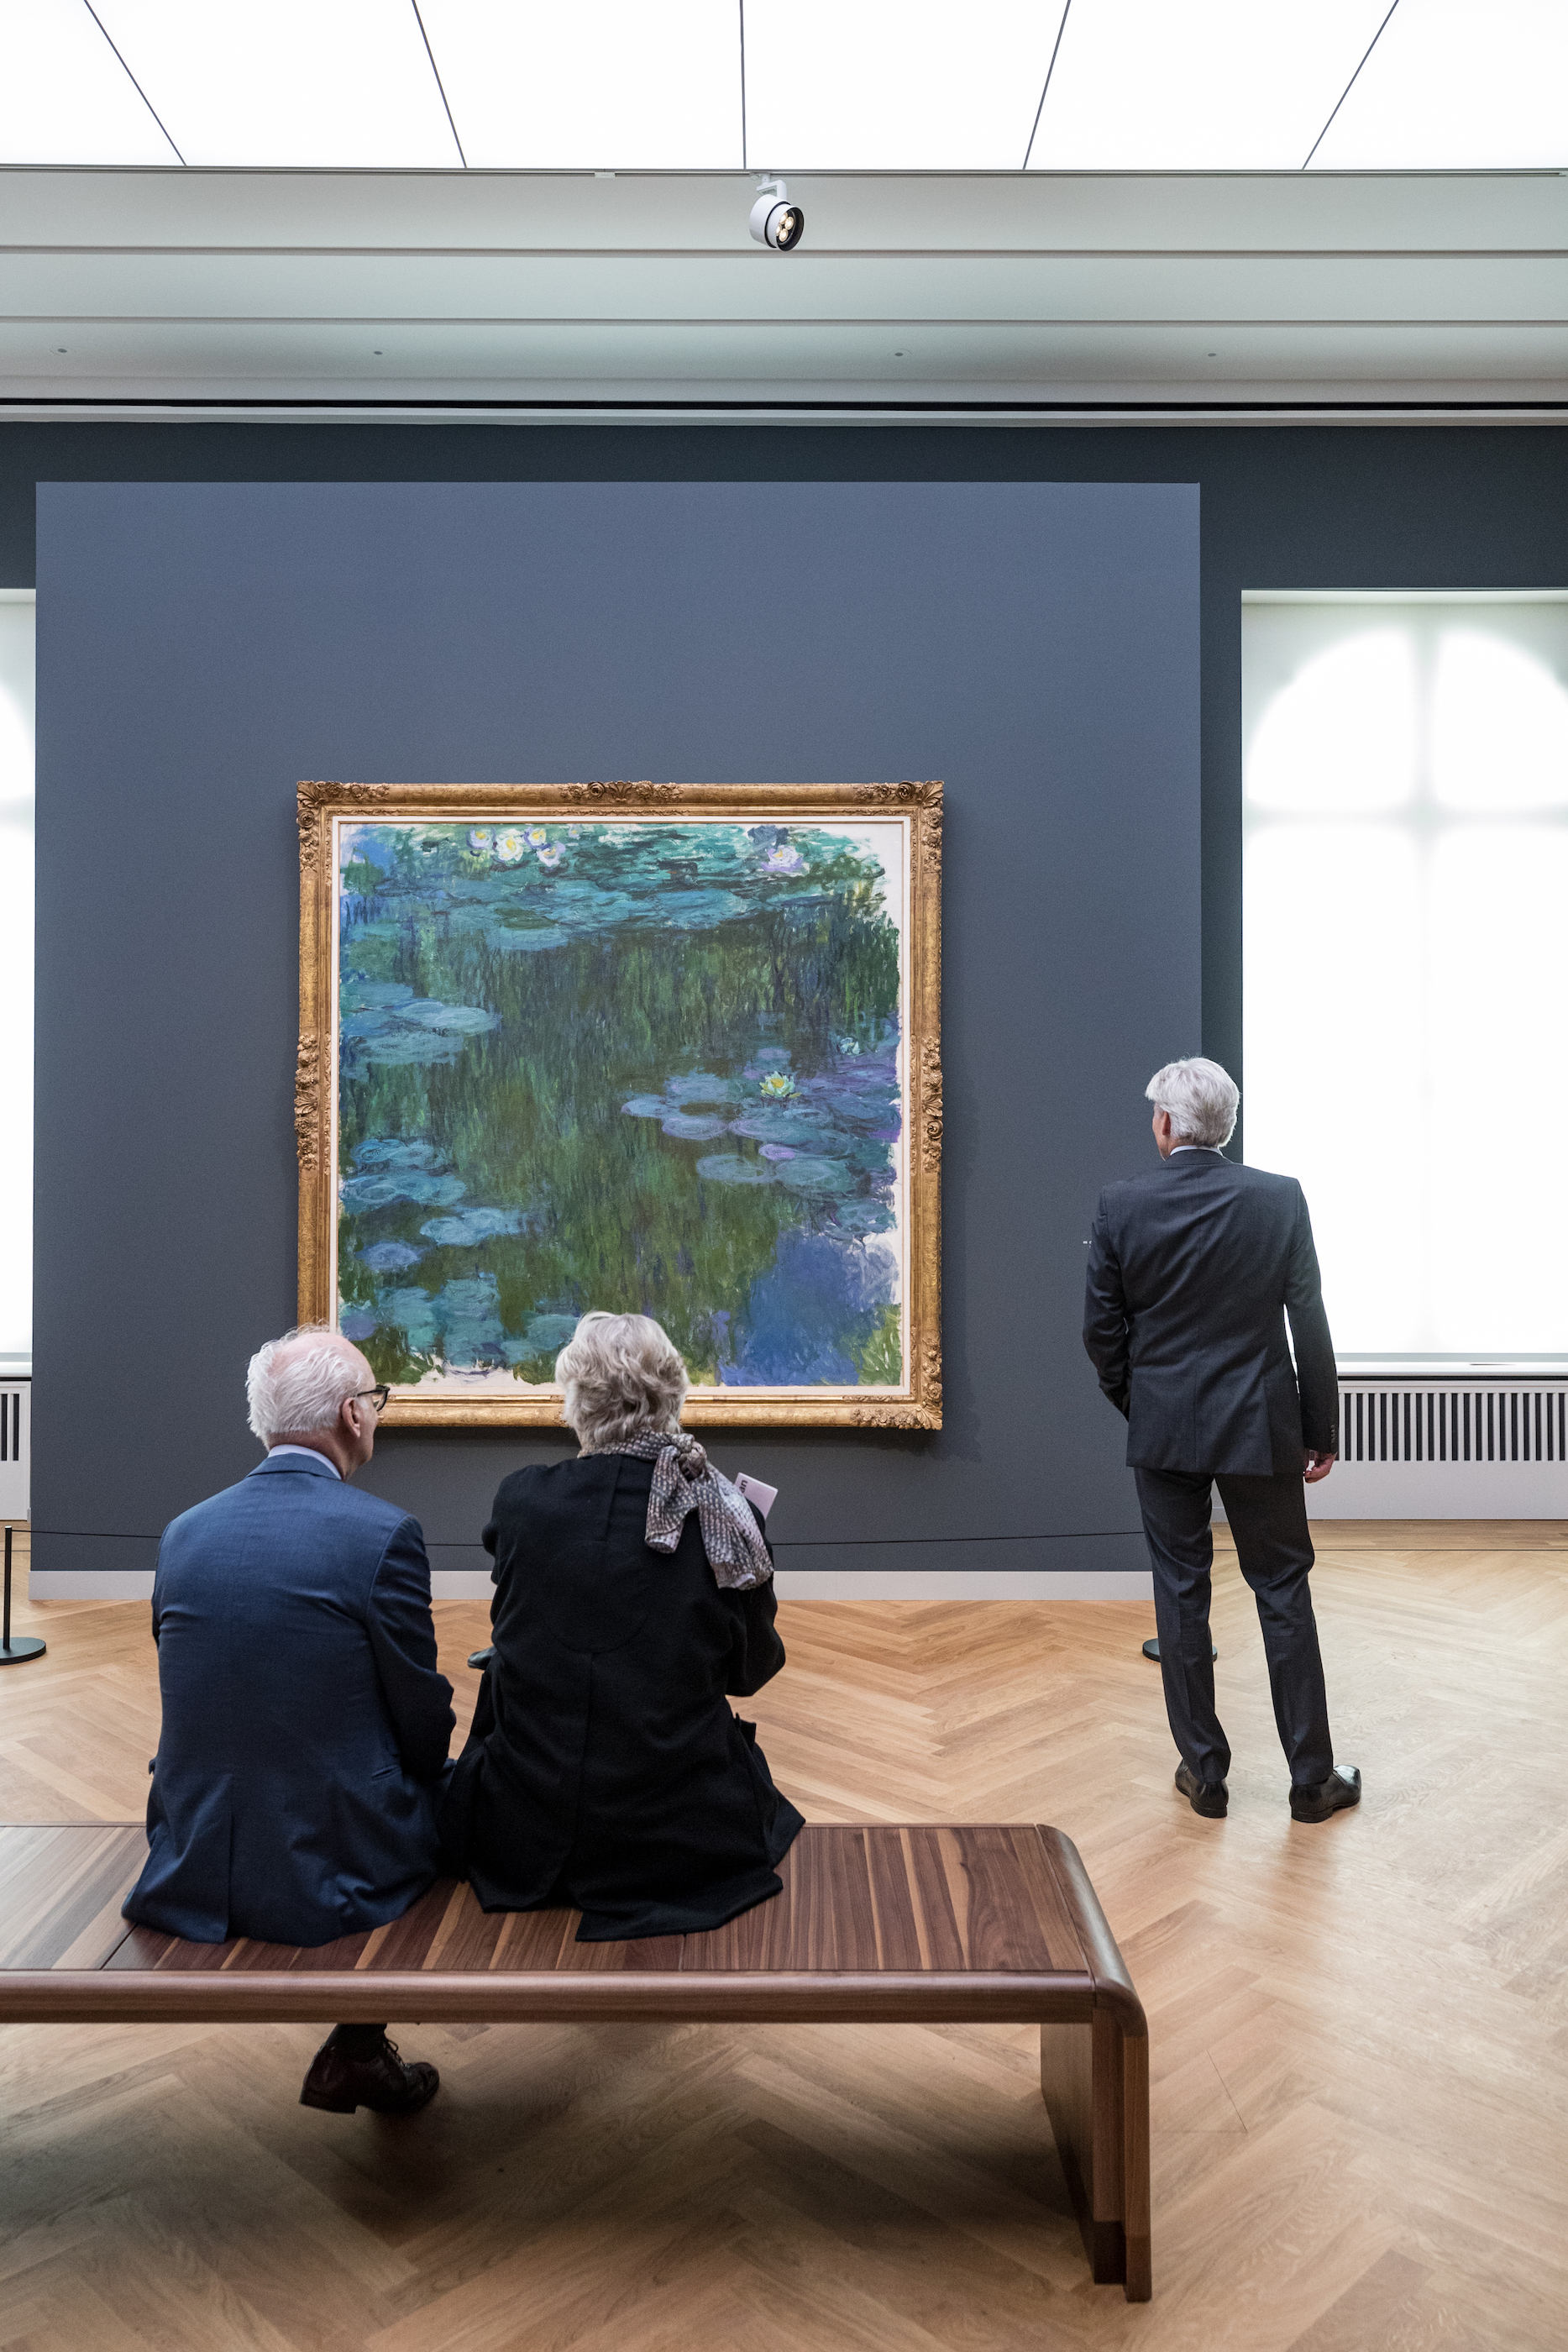 "Exhibition view ""Impressionism. The Art of Landscape"" with Claude Monet's Water Lilies, Museum Barberini, Photo: Helge Mundt, © Museum Barberini"